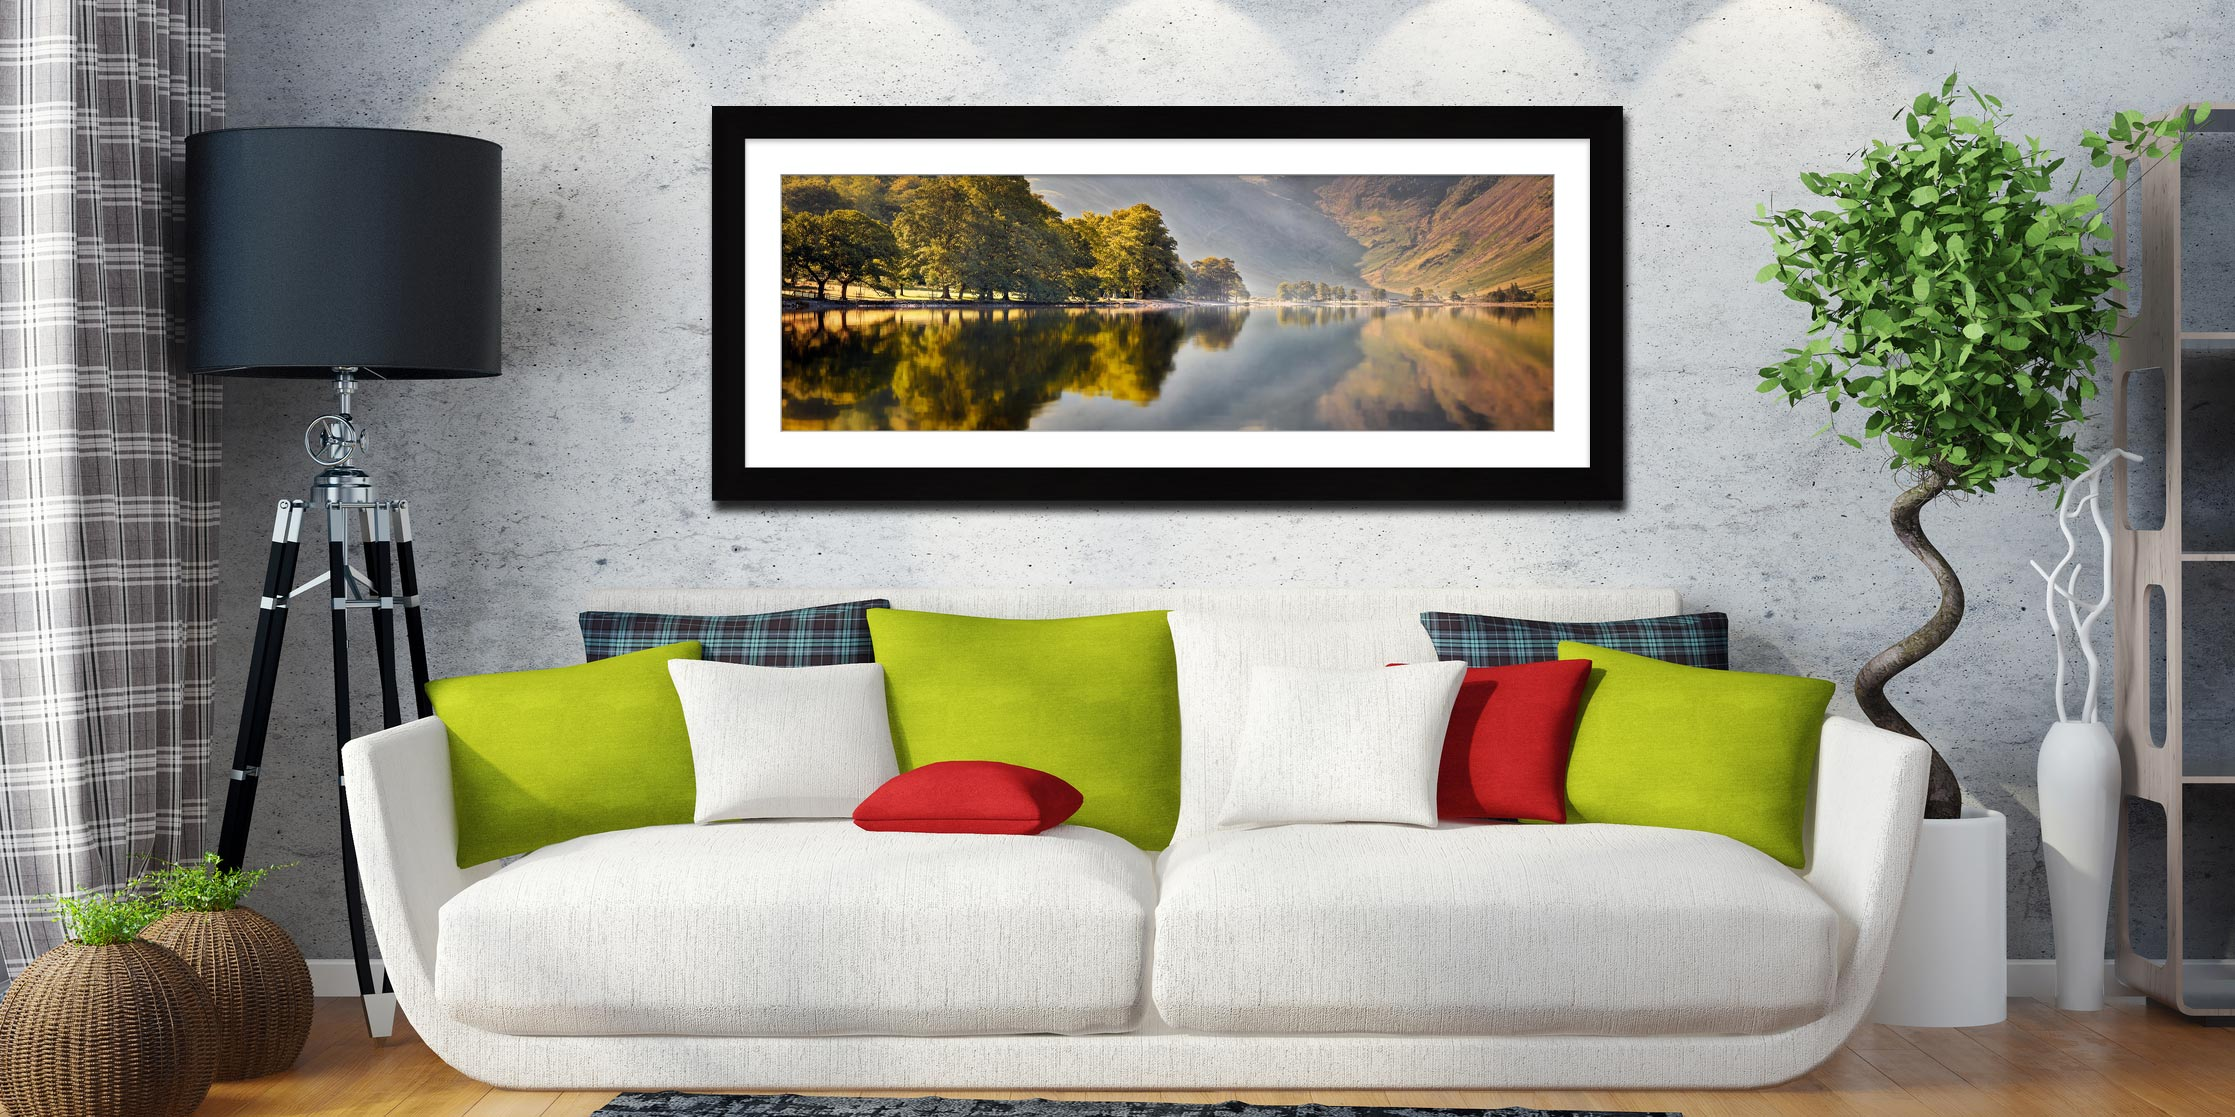 Hazy Days at Buttermere - Framed Print with Mount on Wall